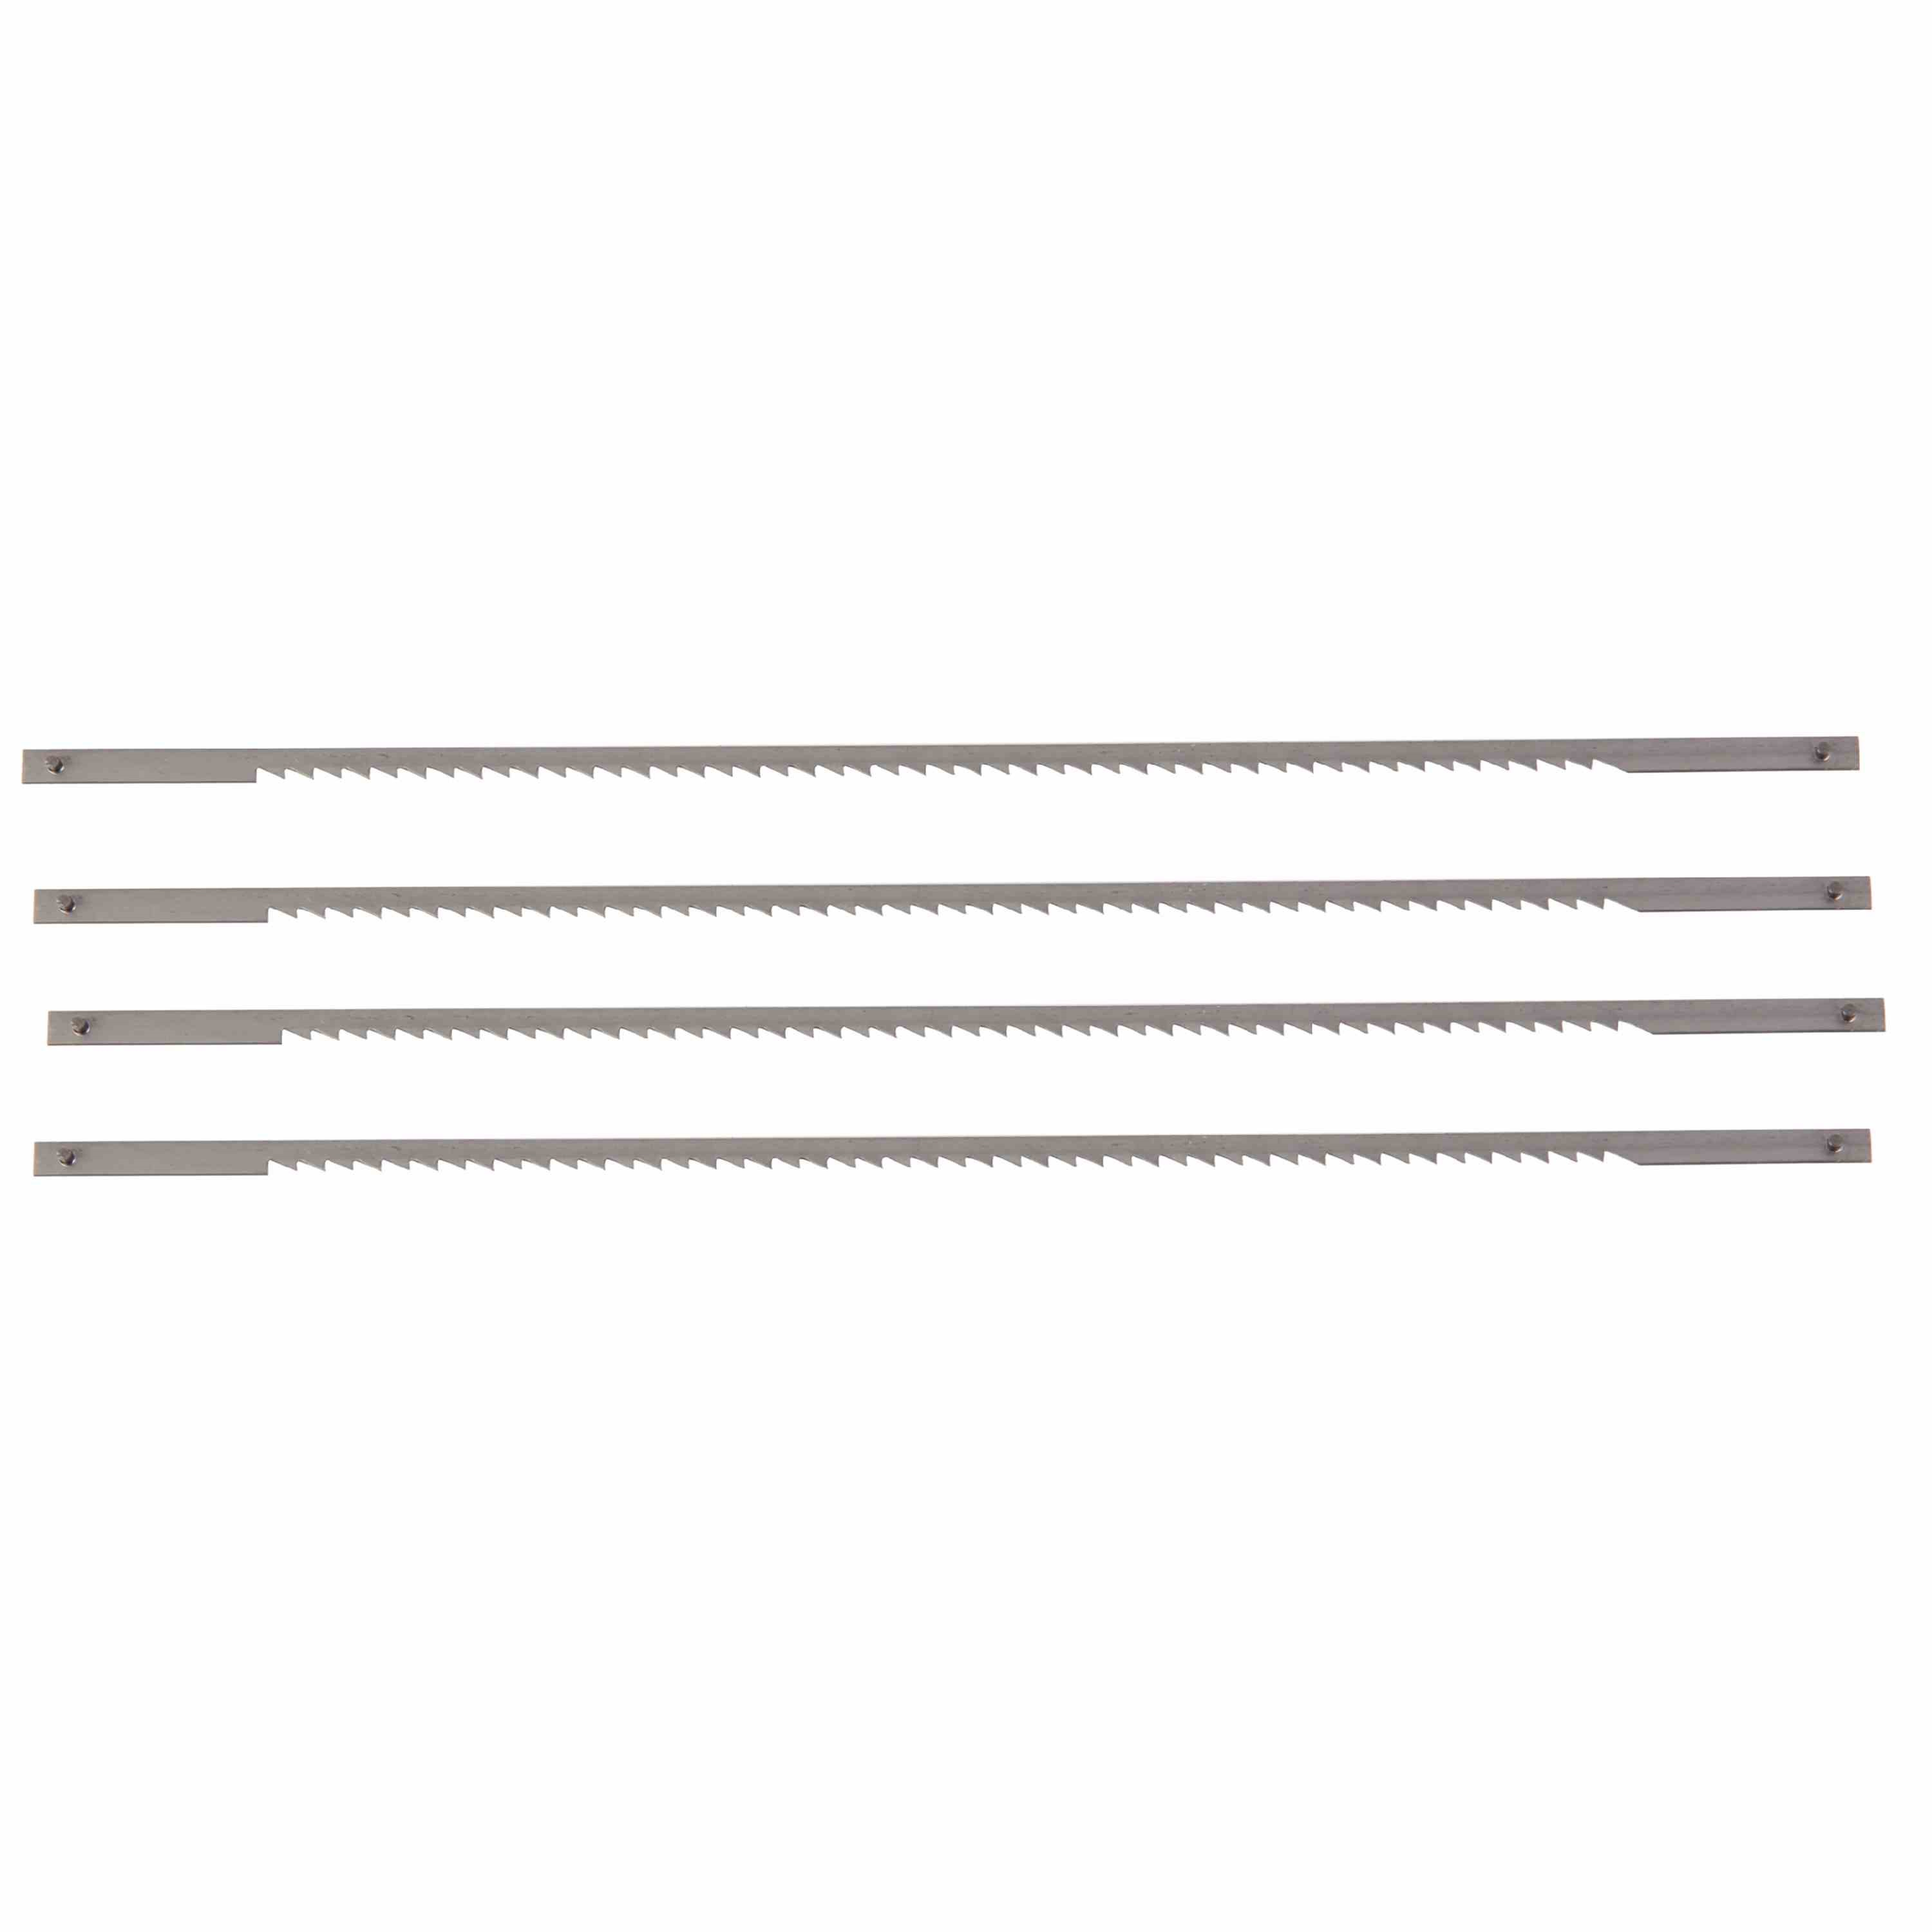 Stanley Tools - 4 pk 612 in x 10 TPI Coping Saw Blades - 15-058